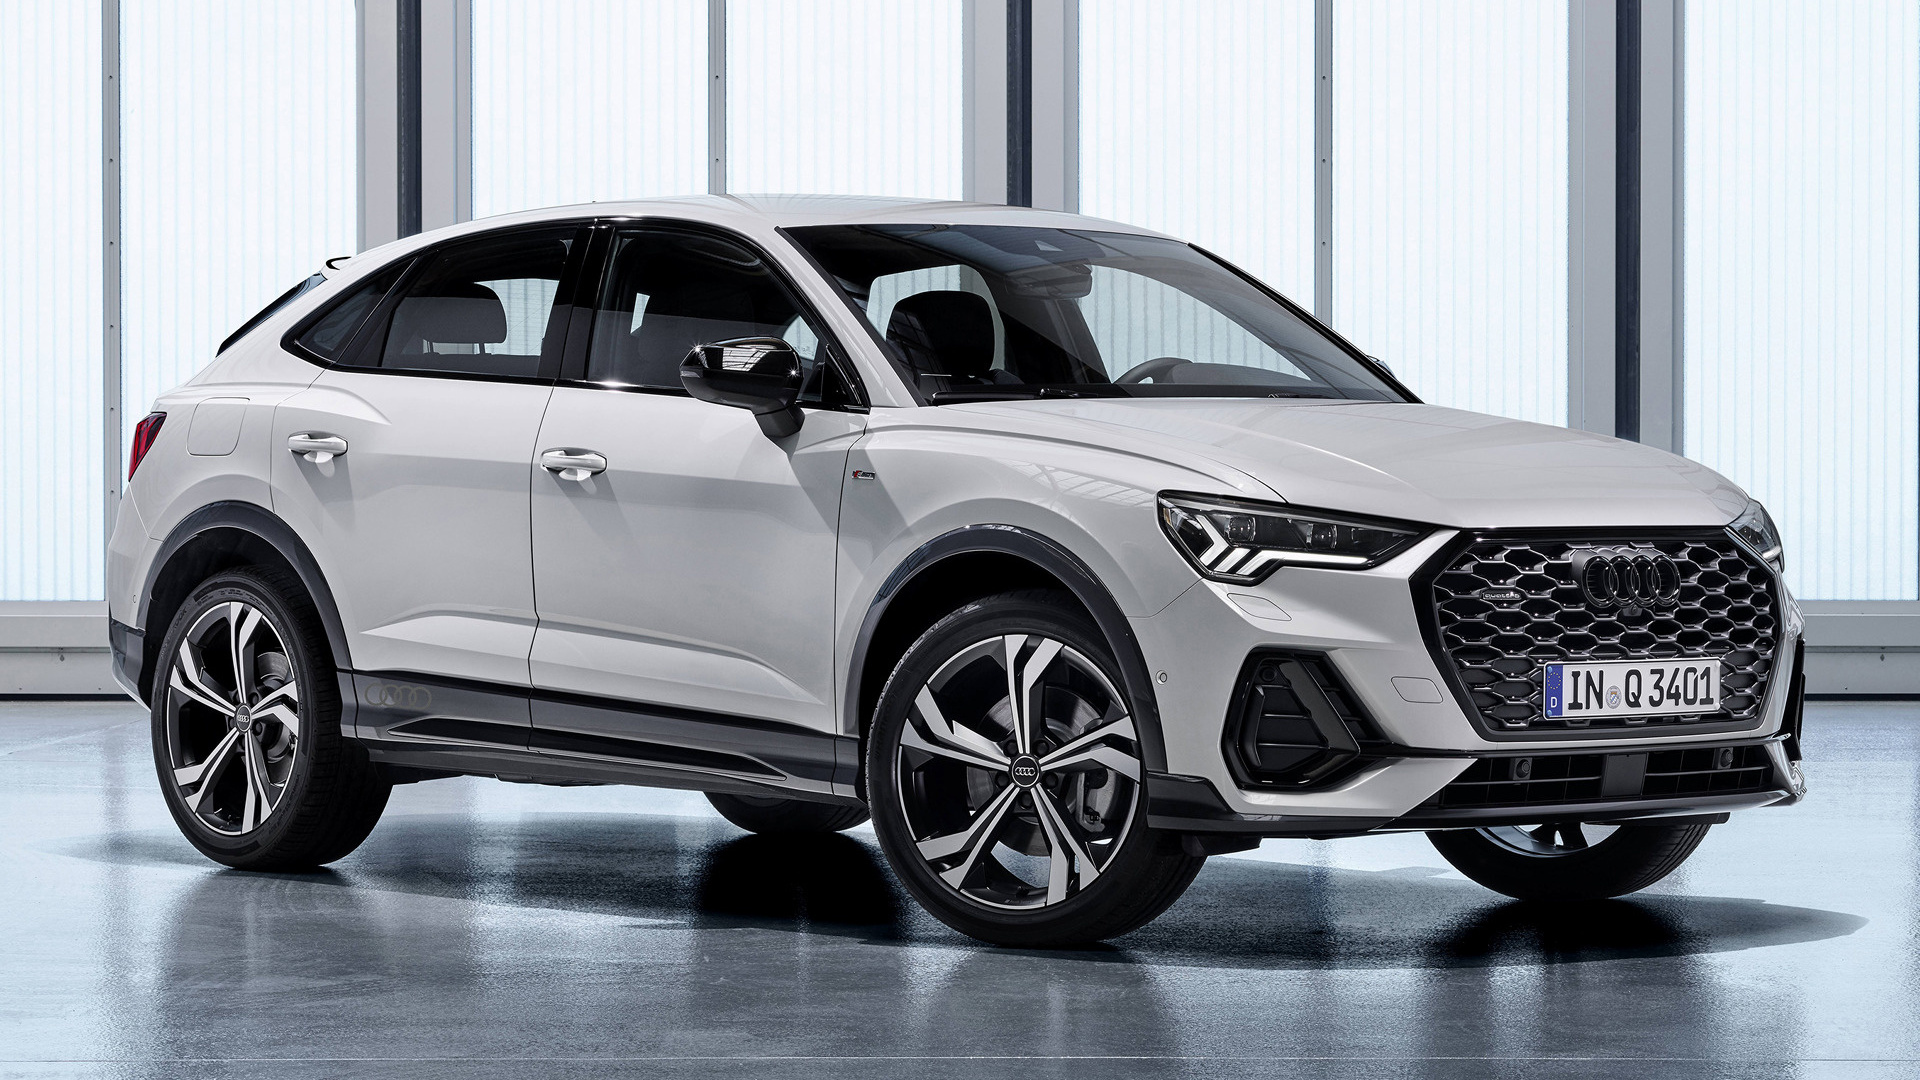 2019 Audi Q3 Sportback Edition One Wallpapers and HD